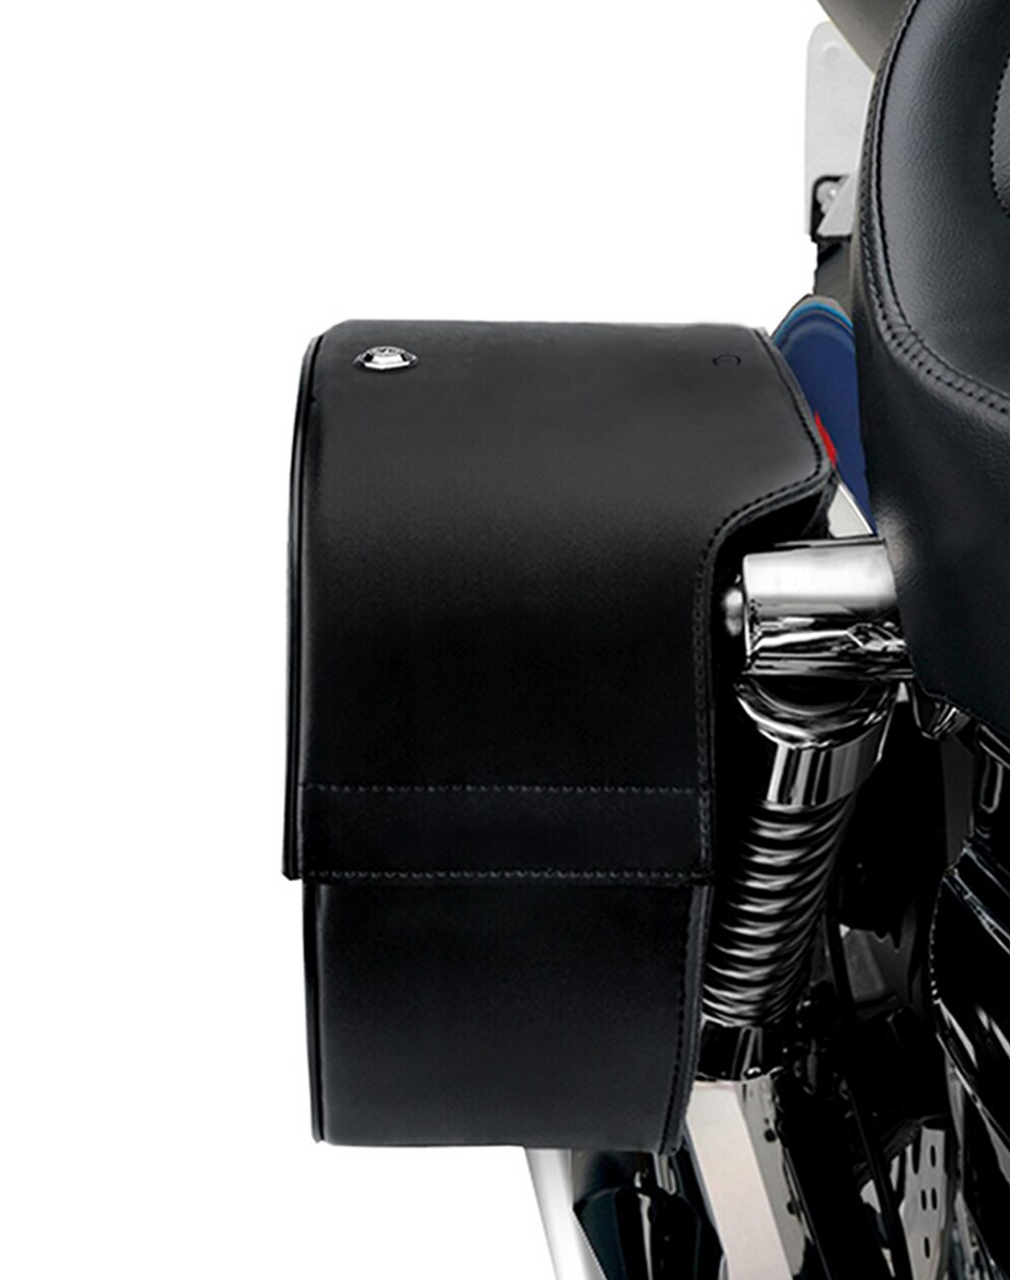 Viking Shock Cutout Slanted Studded Large Motorcycle Saddlebags For Harley Dyna Low Rider FXDL Shock Cutout View